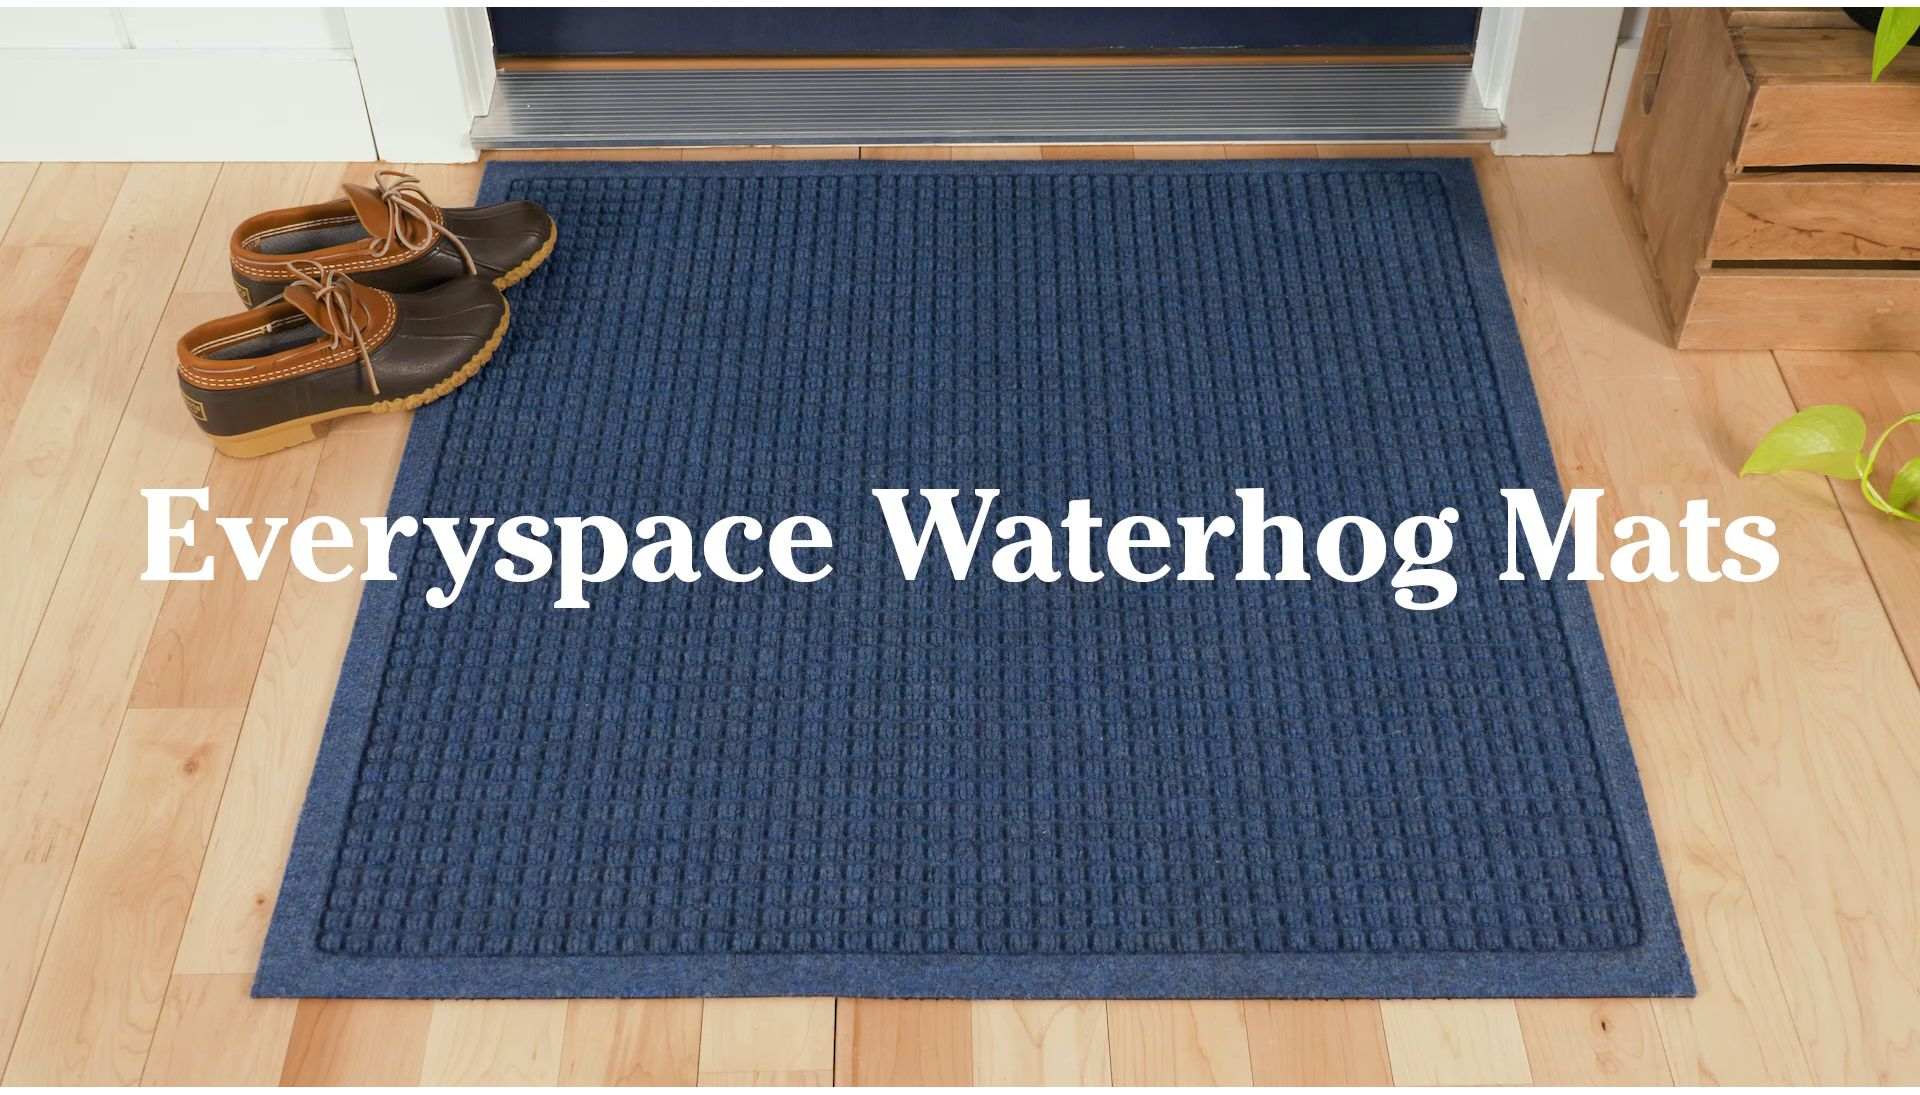 Video: EVERYSPACE WATERHOG MATS